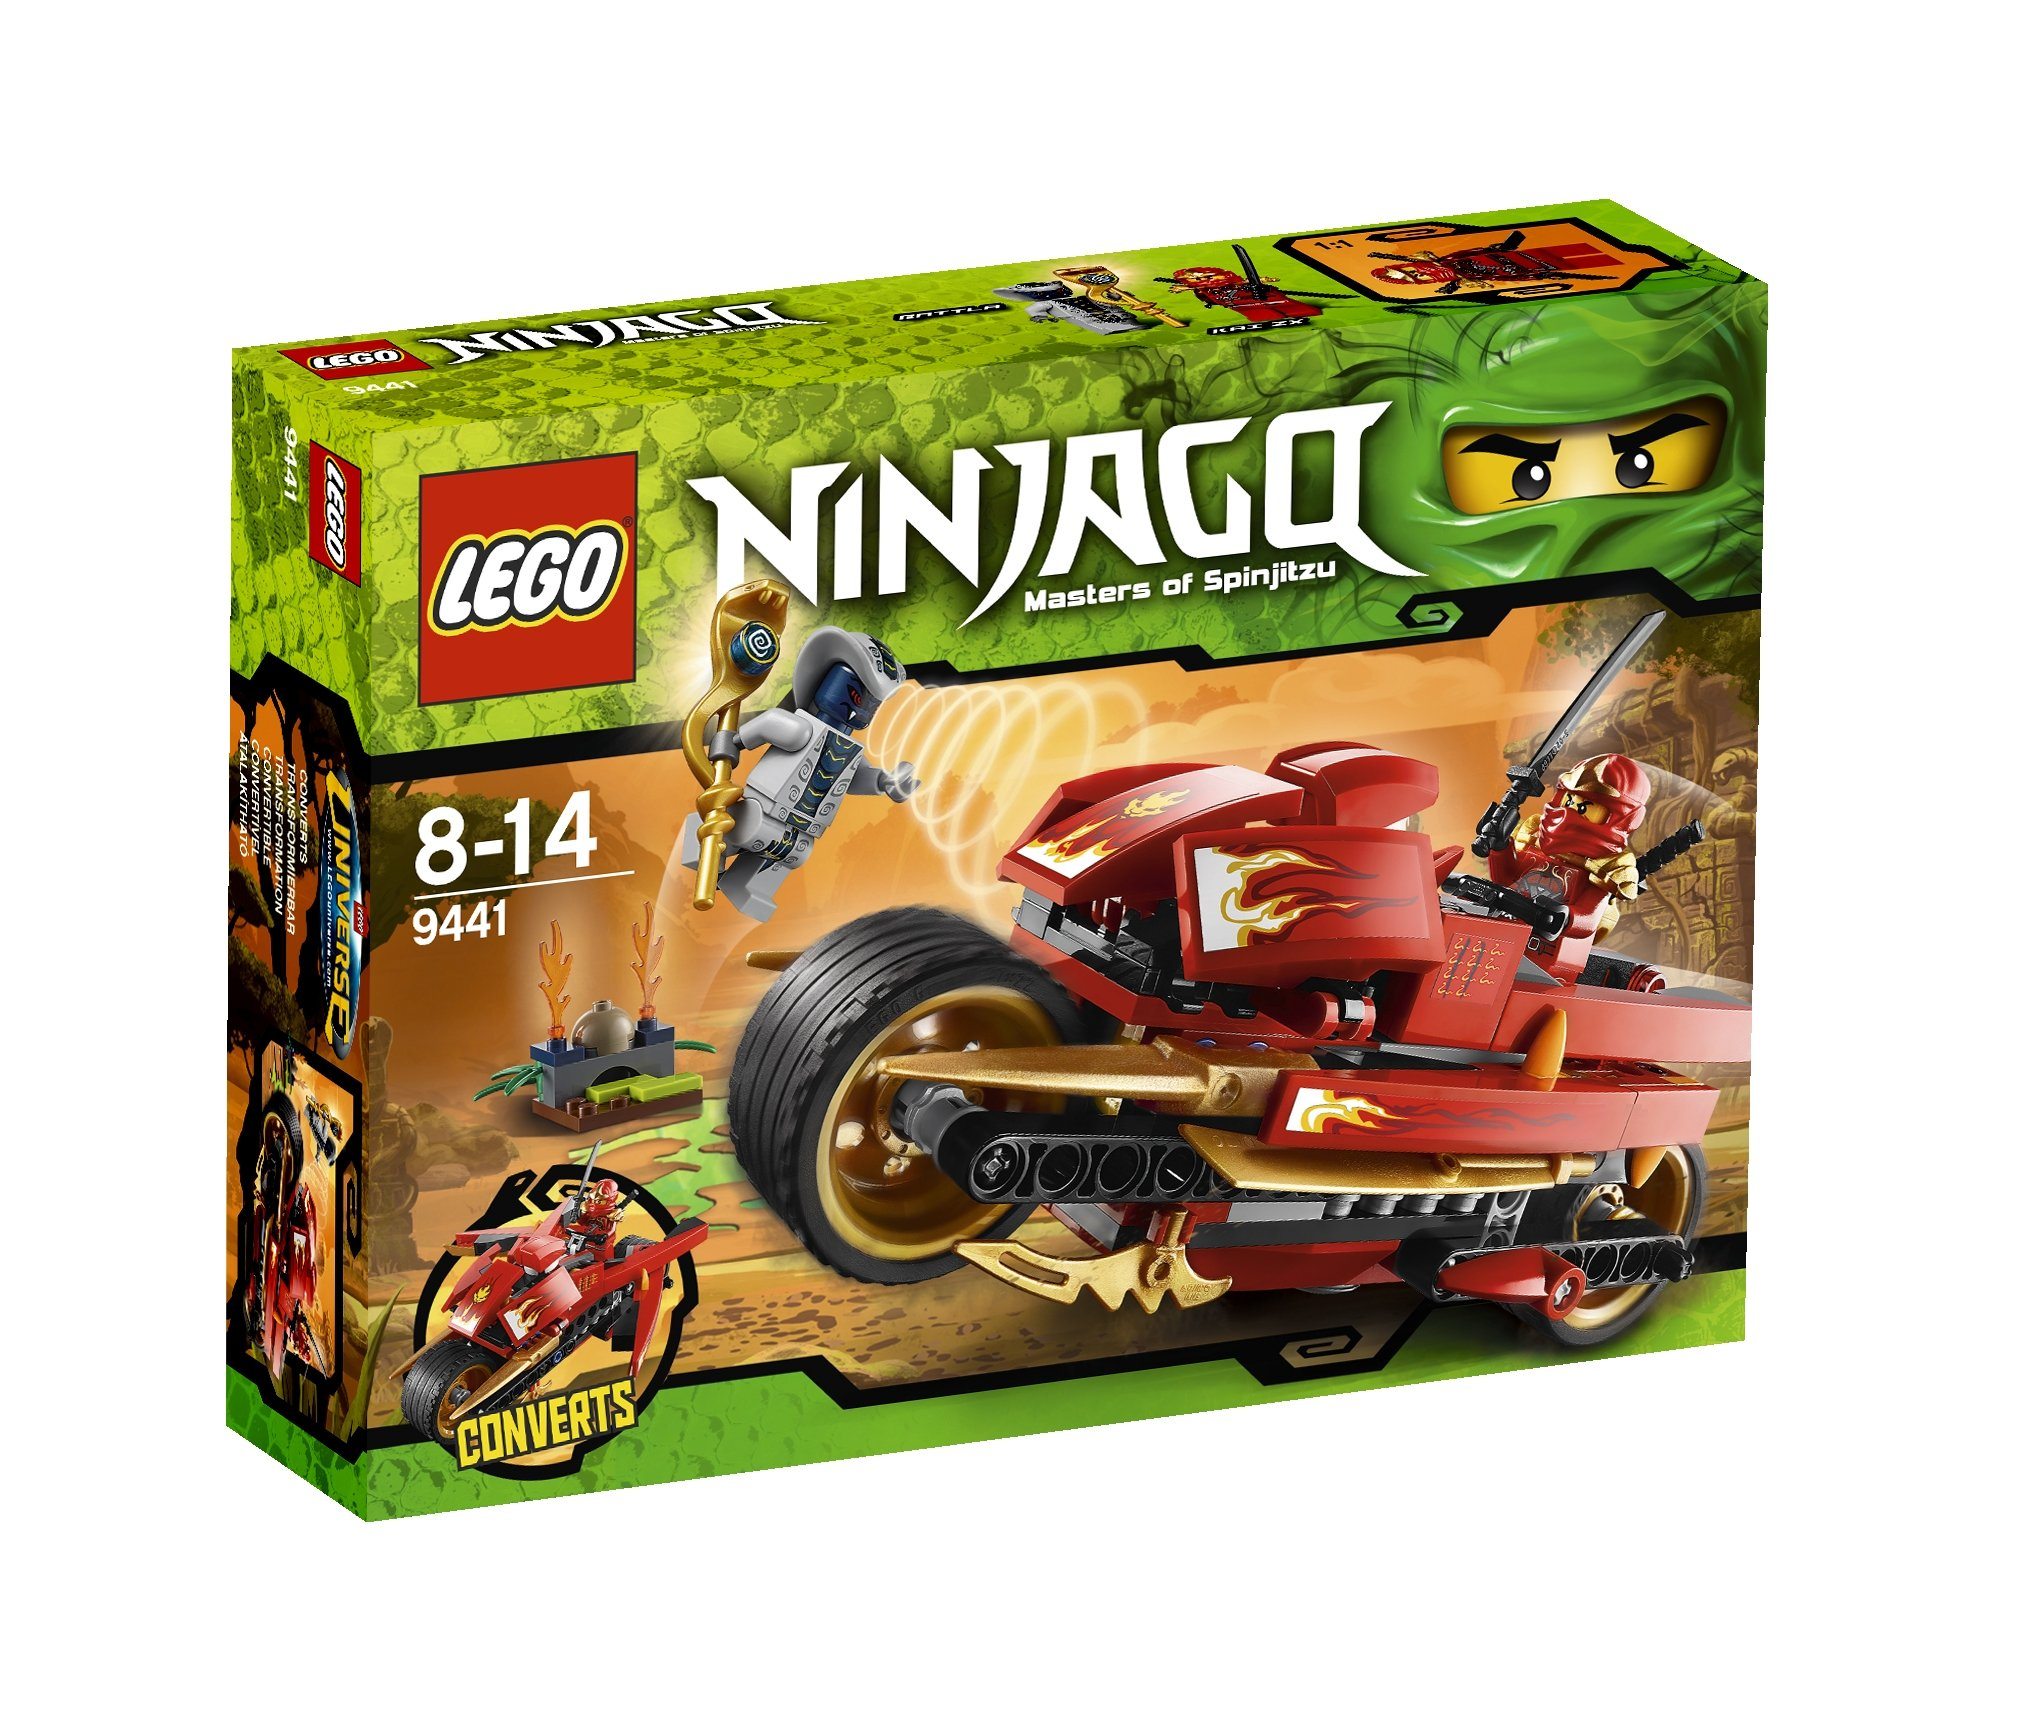 Ninjago Kai Cycle